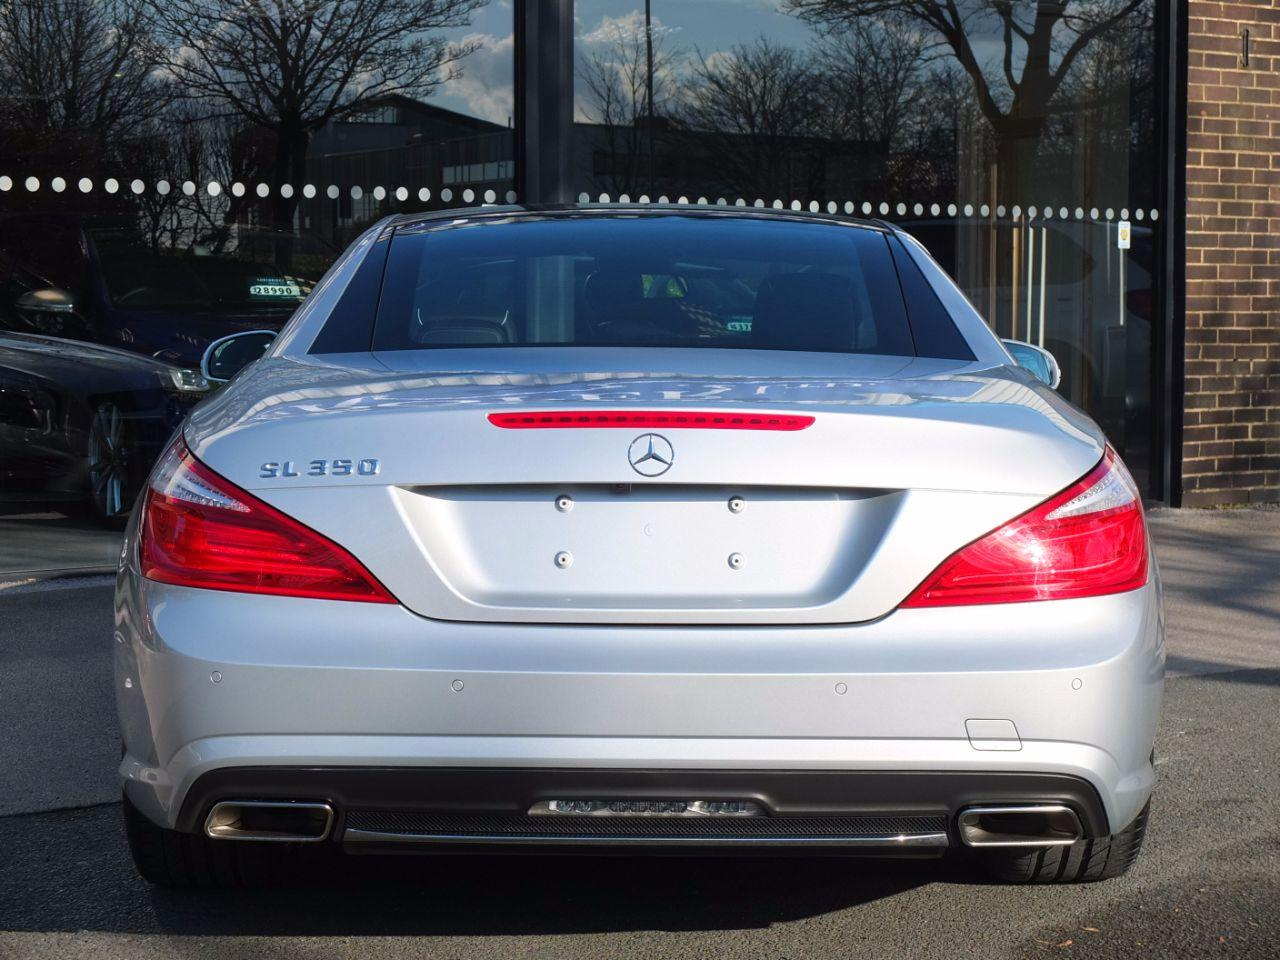 Mercedes-Benz SL Class 3.5 SL 350 BlueEfficiency 7G-Tronic Plus, AMG Sports Package Convertible Petrol Iridium Silver Metallic